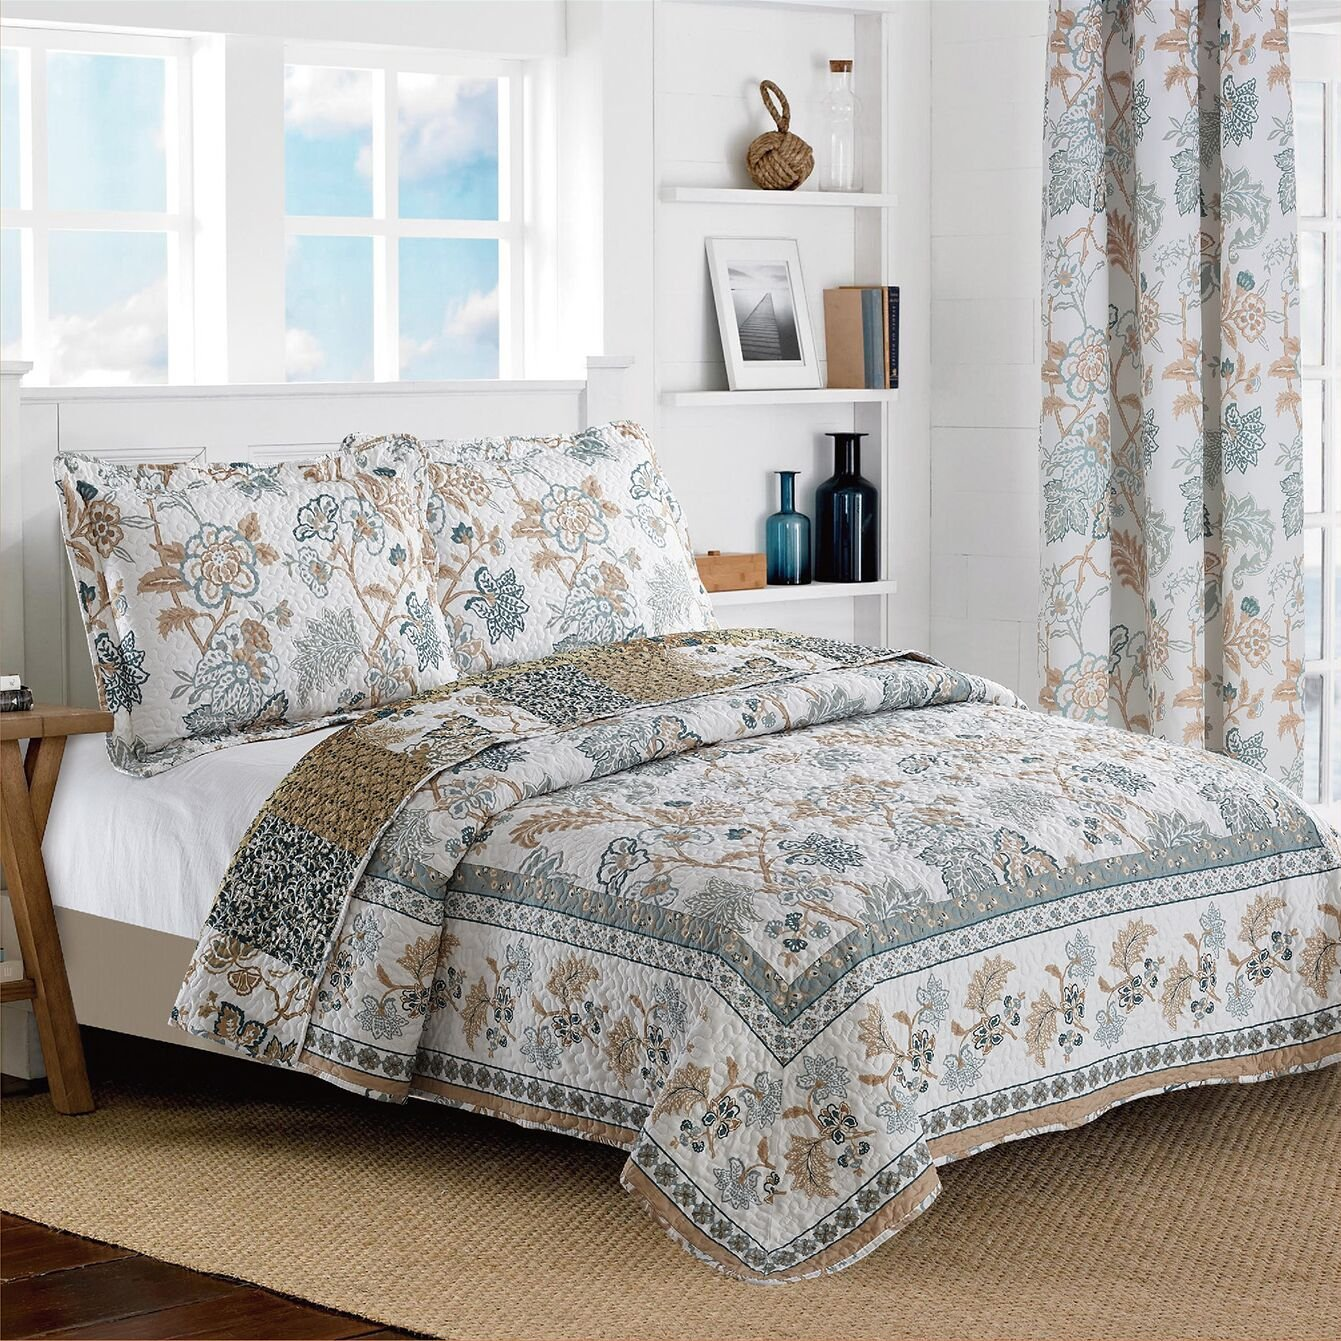 All American Collection New Reversible 3pc Floral Printed Blue/White Bedspread/Quilt Set Queen Size